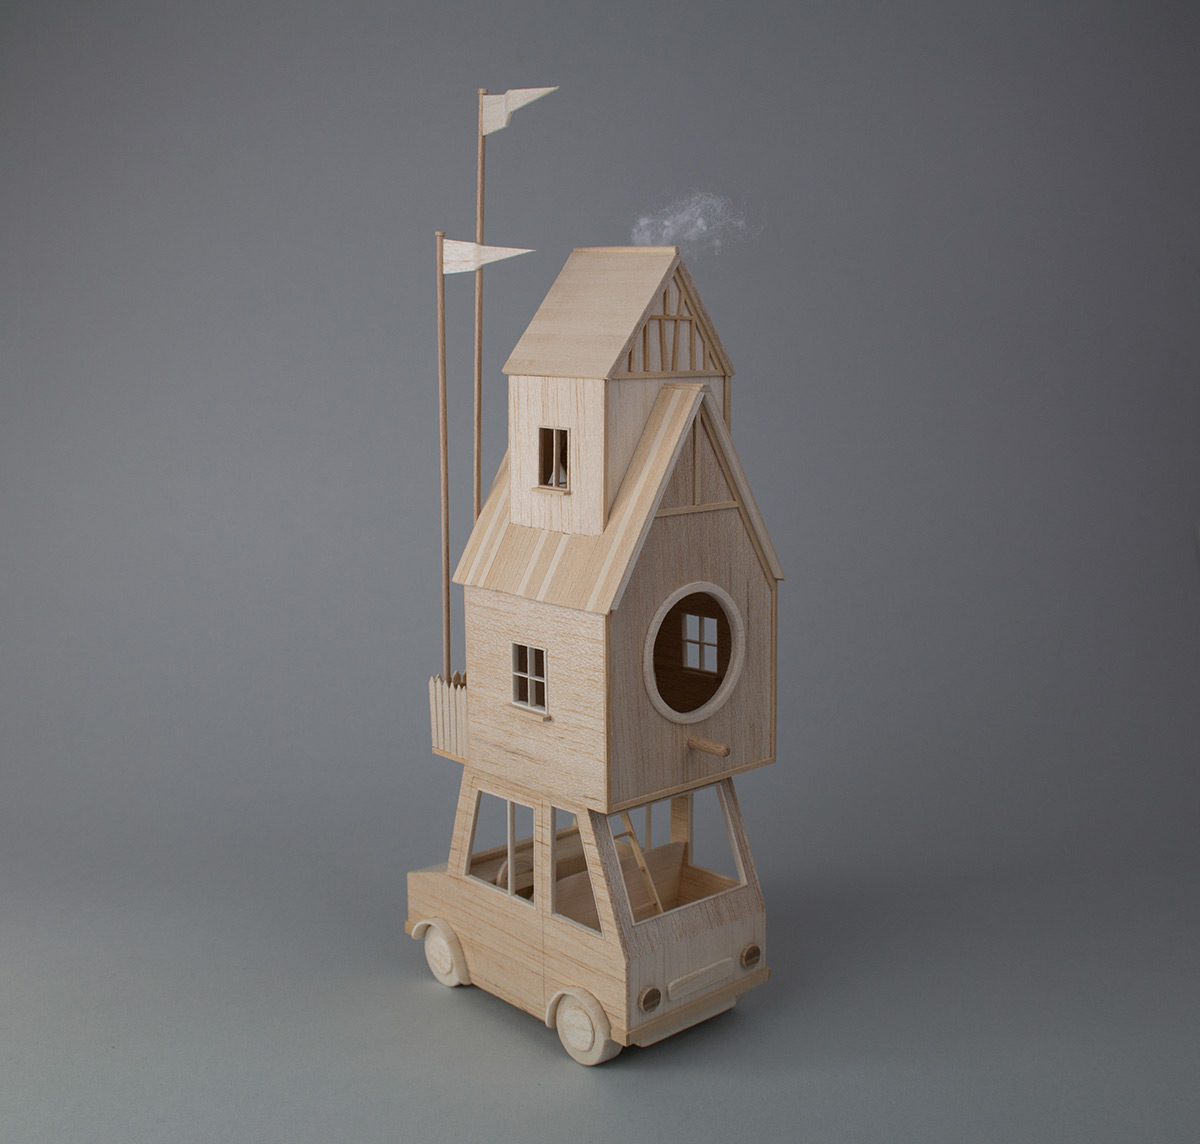 New Miniature Mobile Homes Created From Balsa Wood by Vera van Wolferen